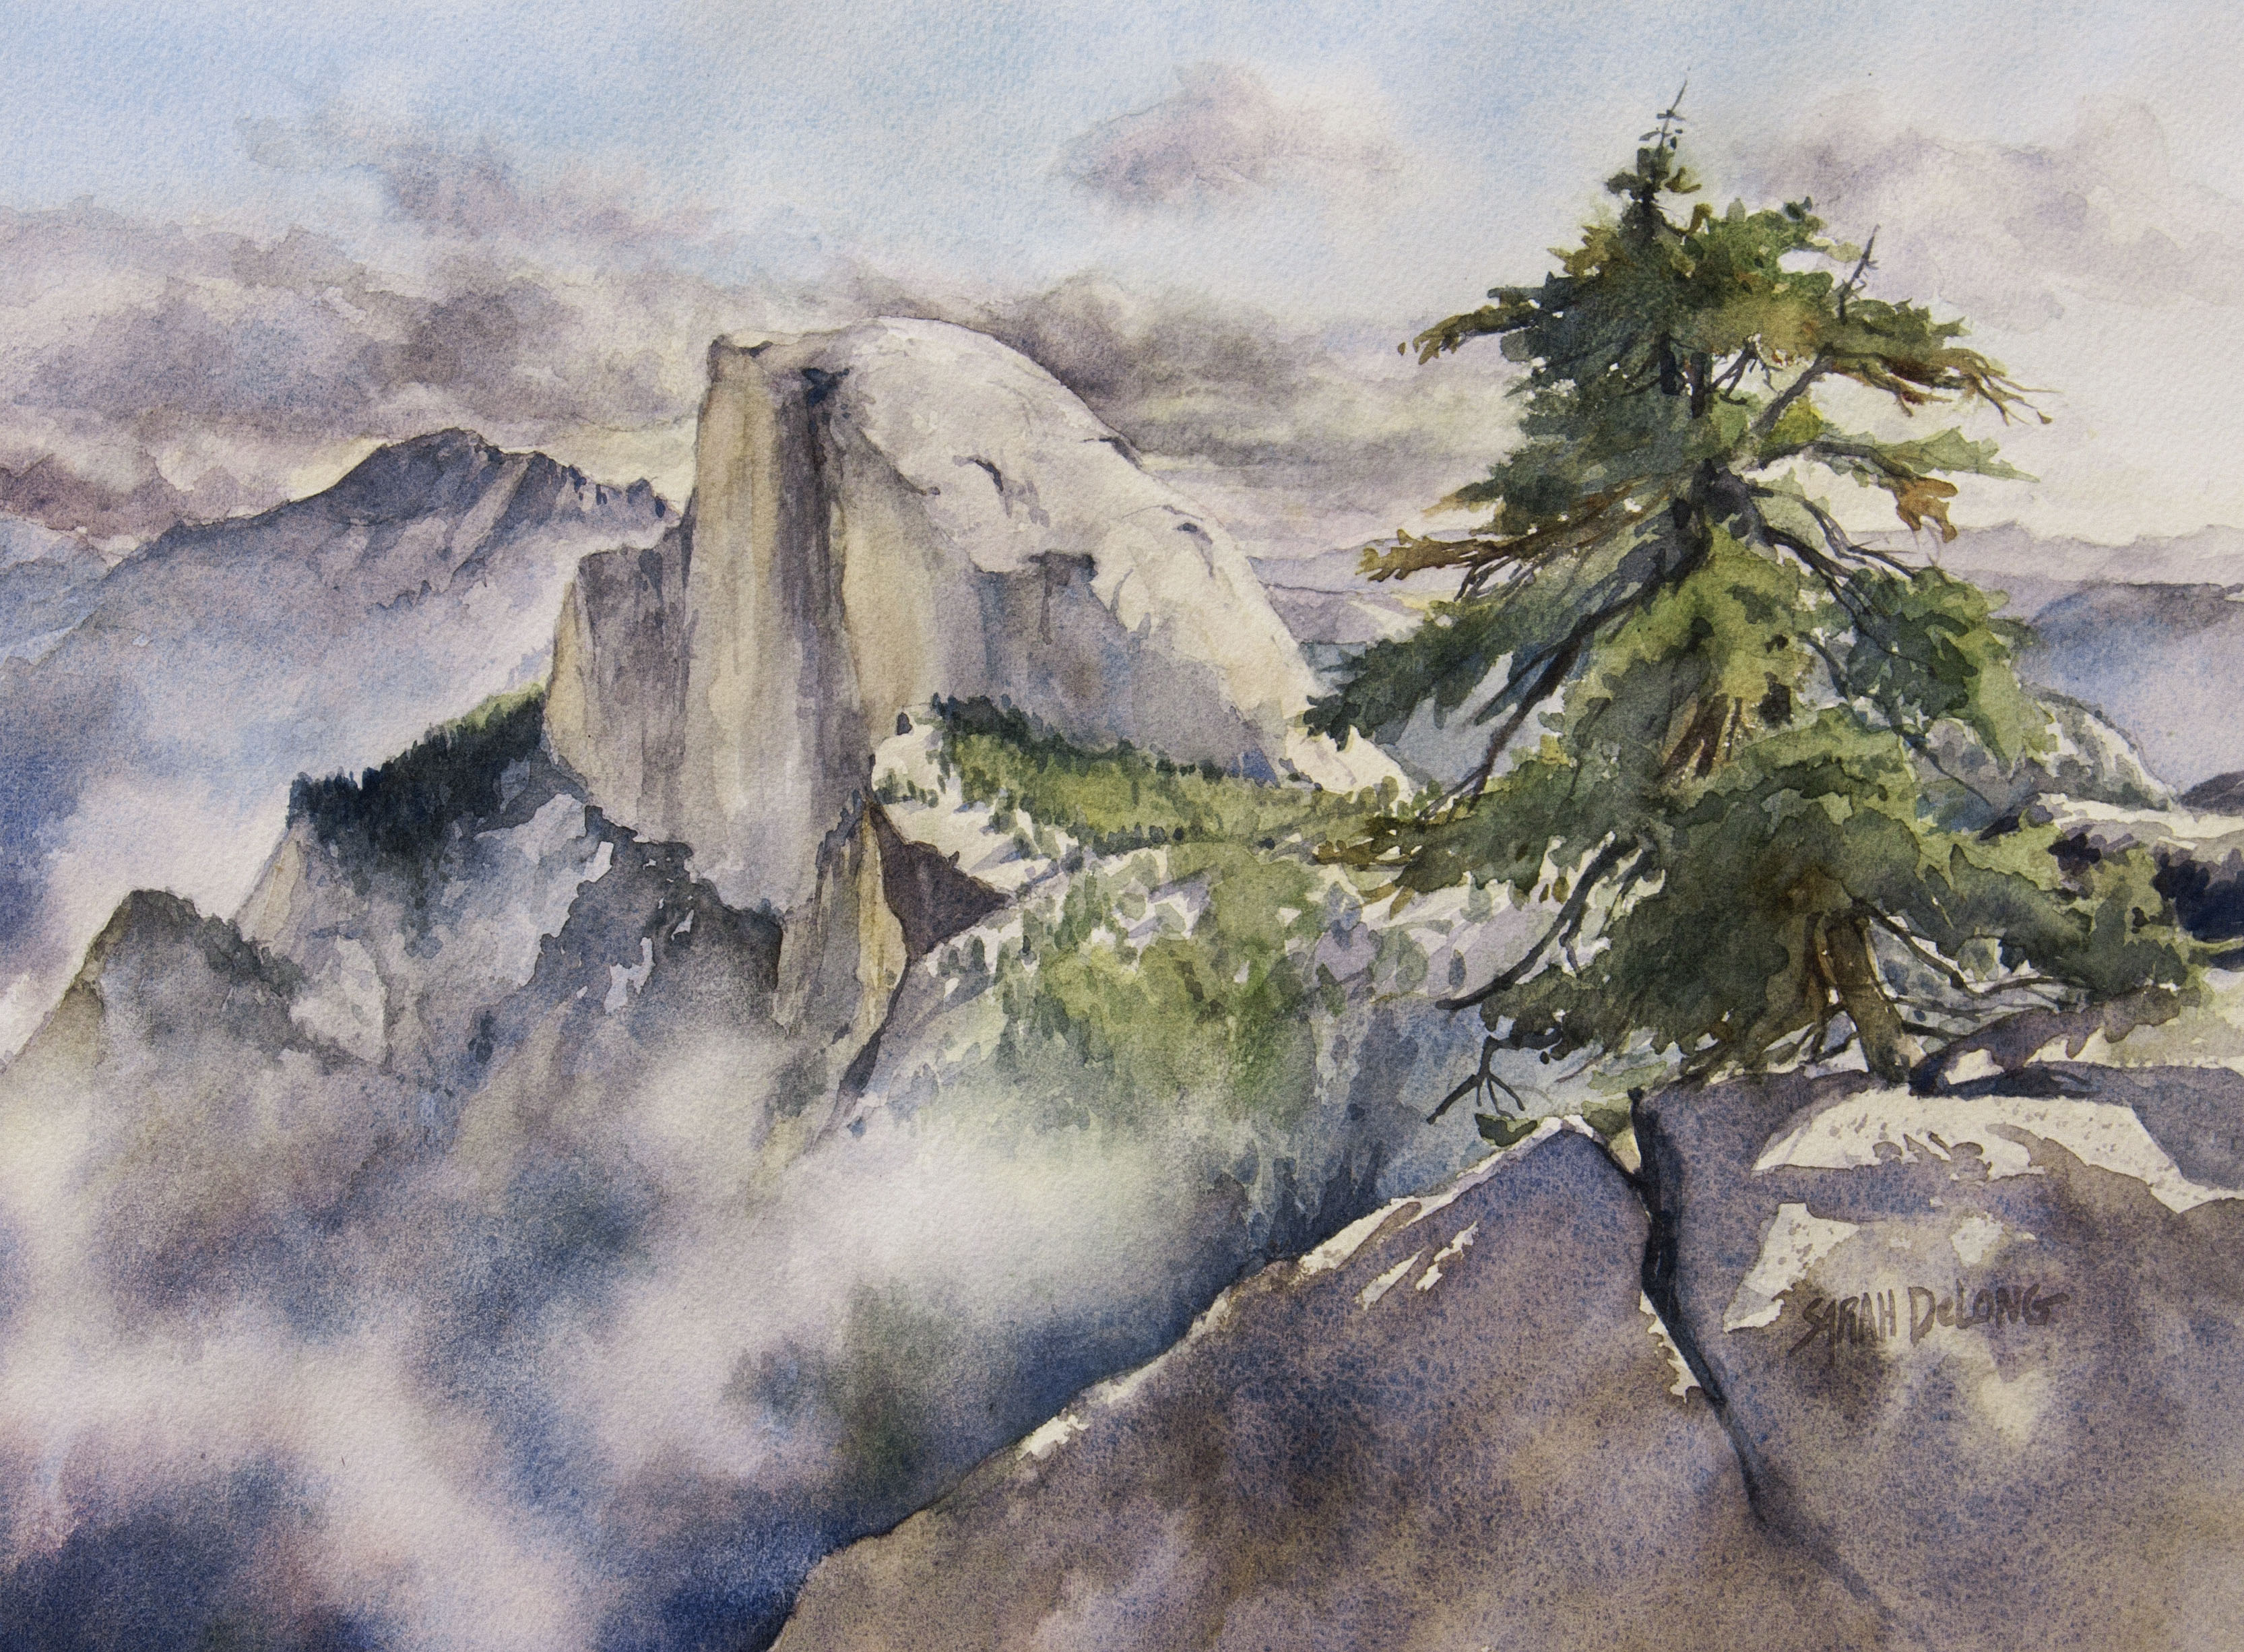 After the Storm: Half Dome